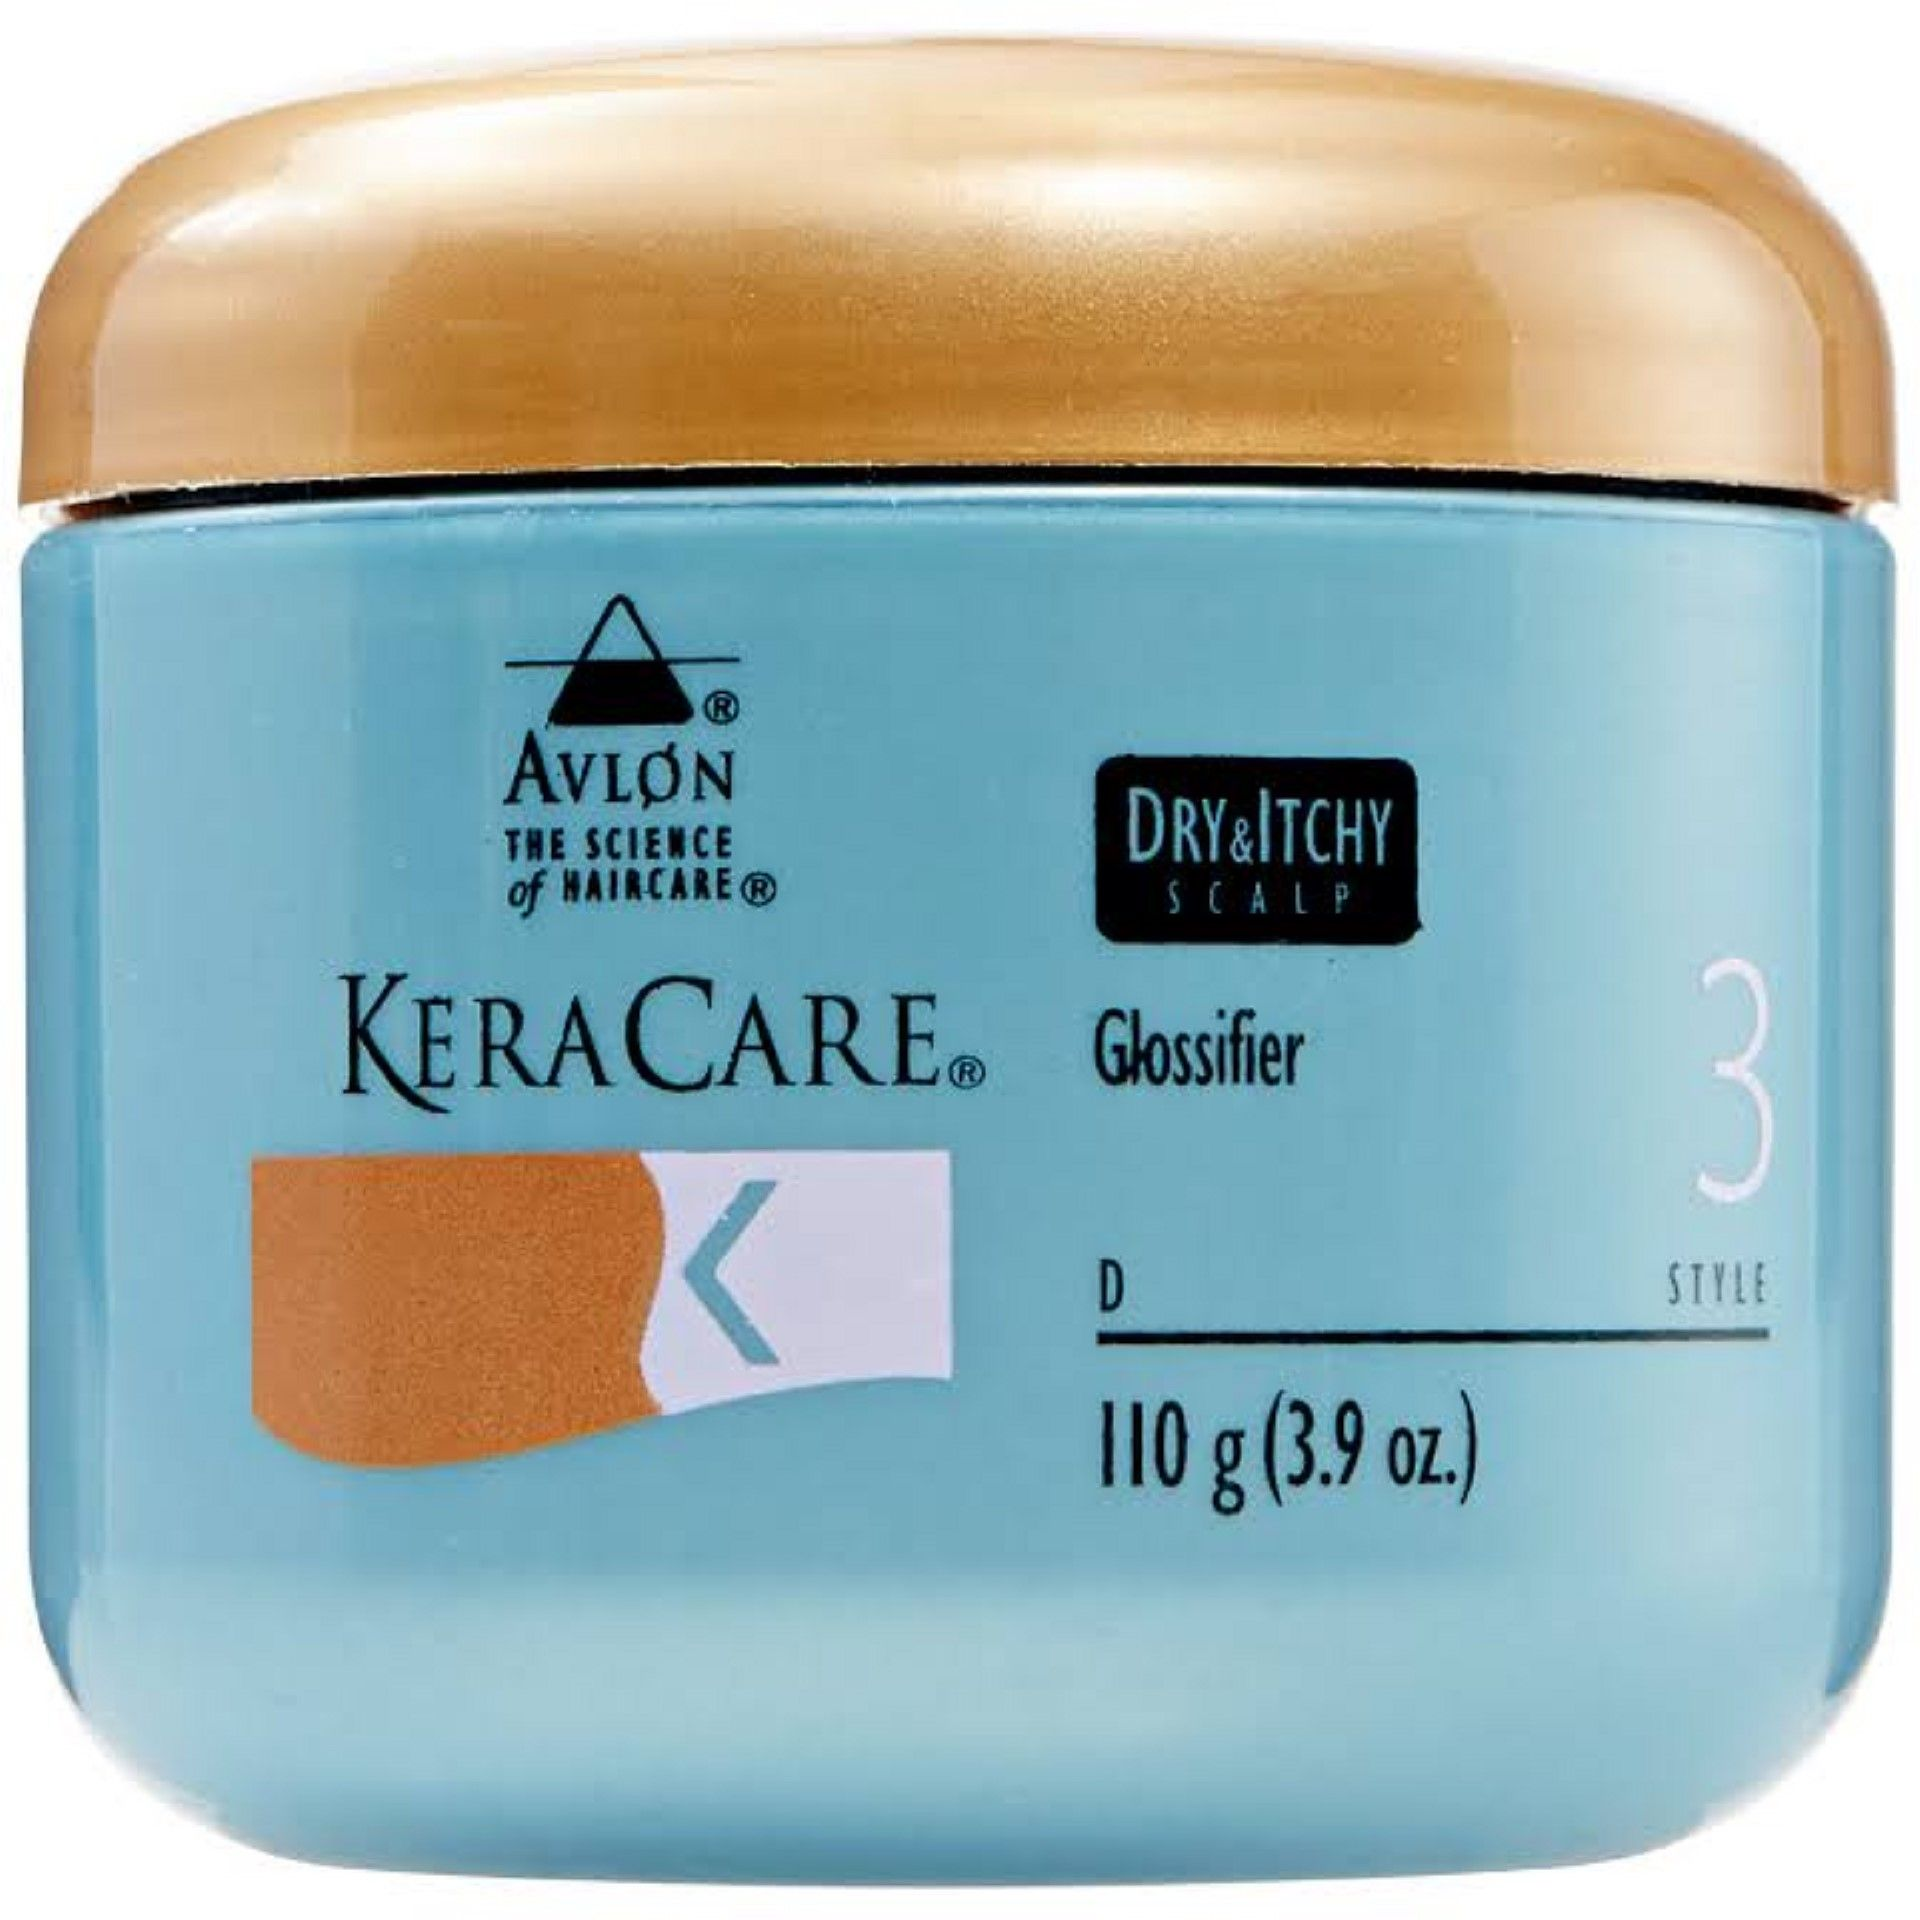 KeraCare Dry and Itchy Scalp Glossifier - 4oz